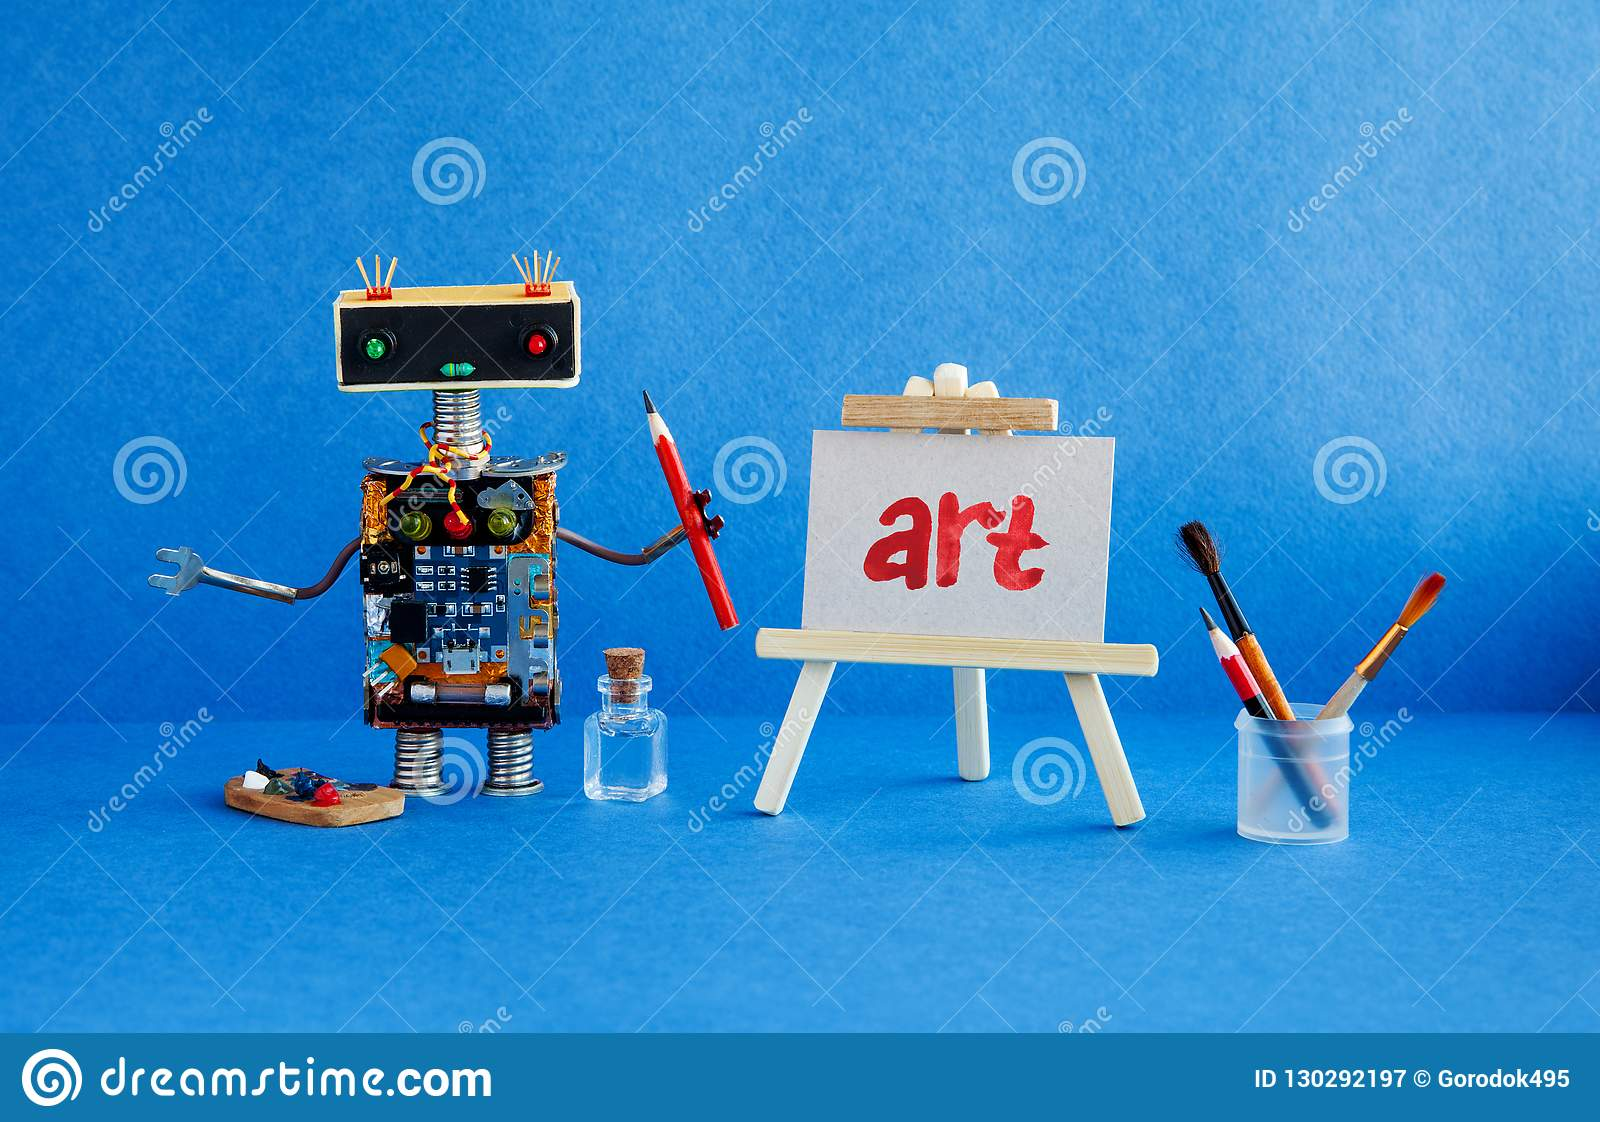 Art and robotic artificial intelligence concept. Robot artist, wooden easel and the handwritten word Art painted red